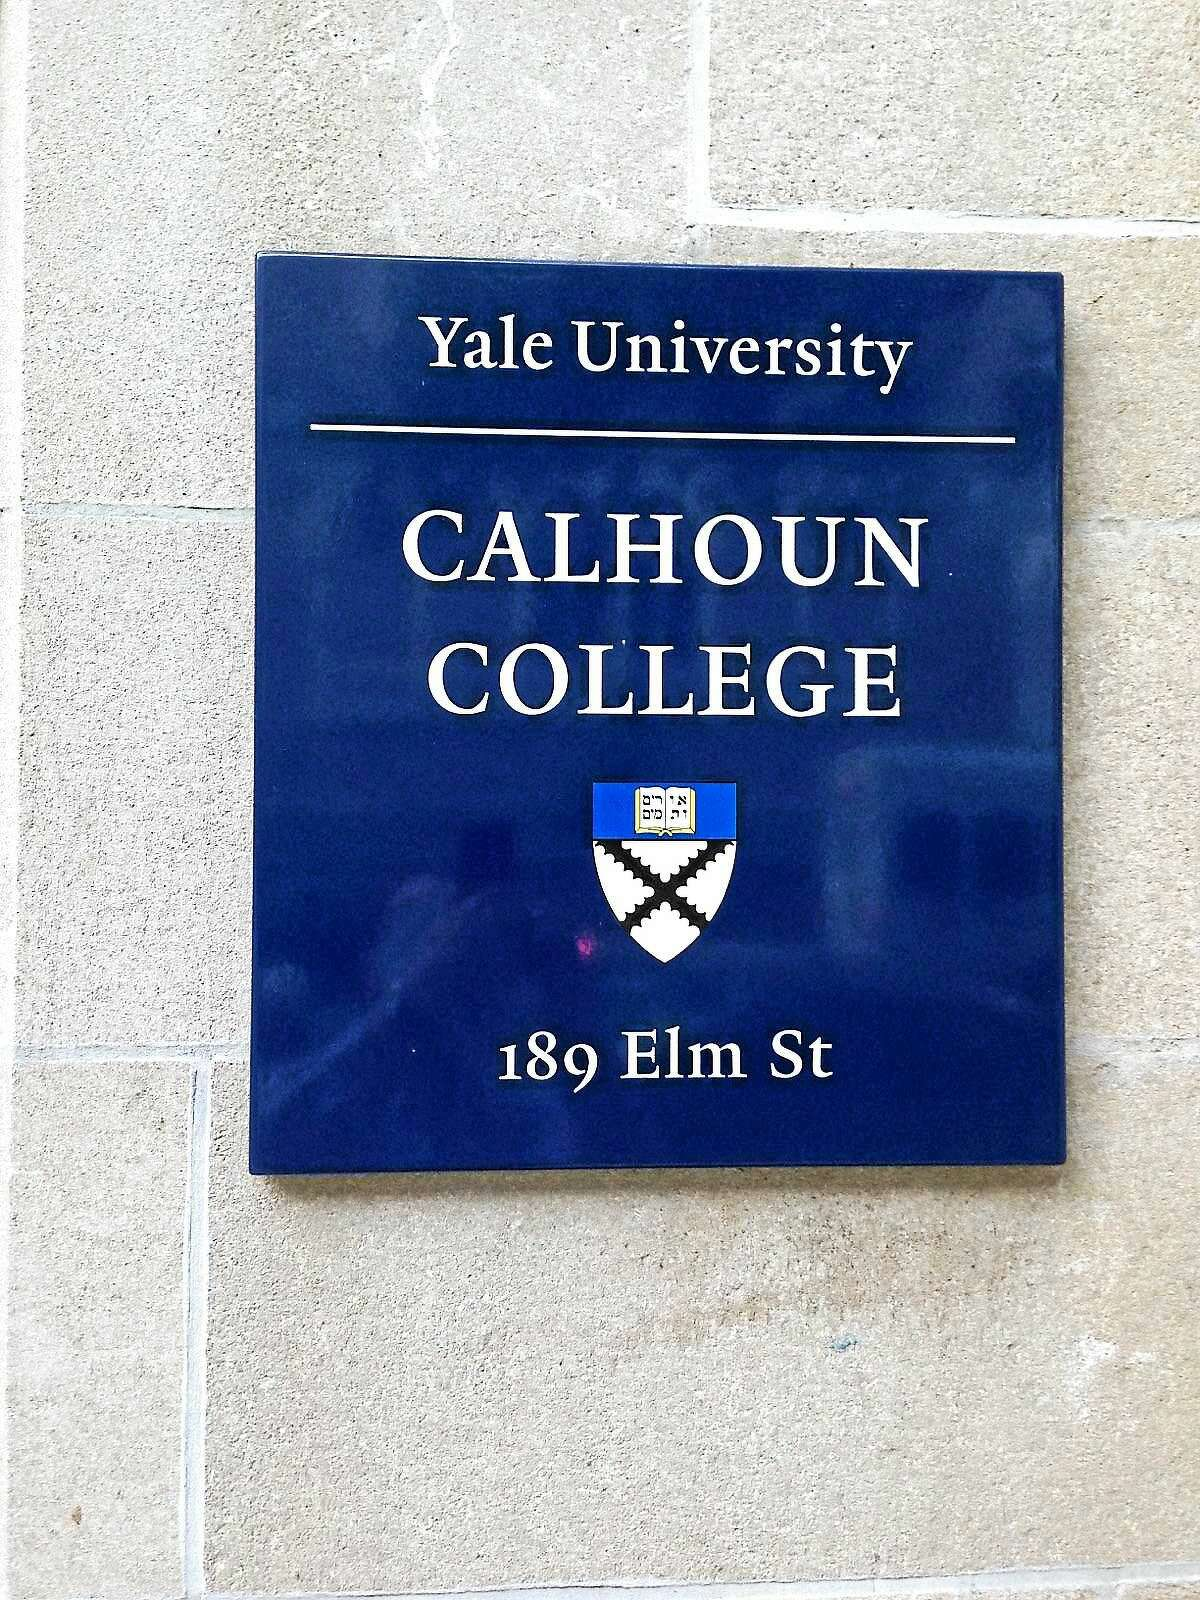 (Ed Stannard - New Haven Register) The sign at Calhoun College at Yale University in New Haven